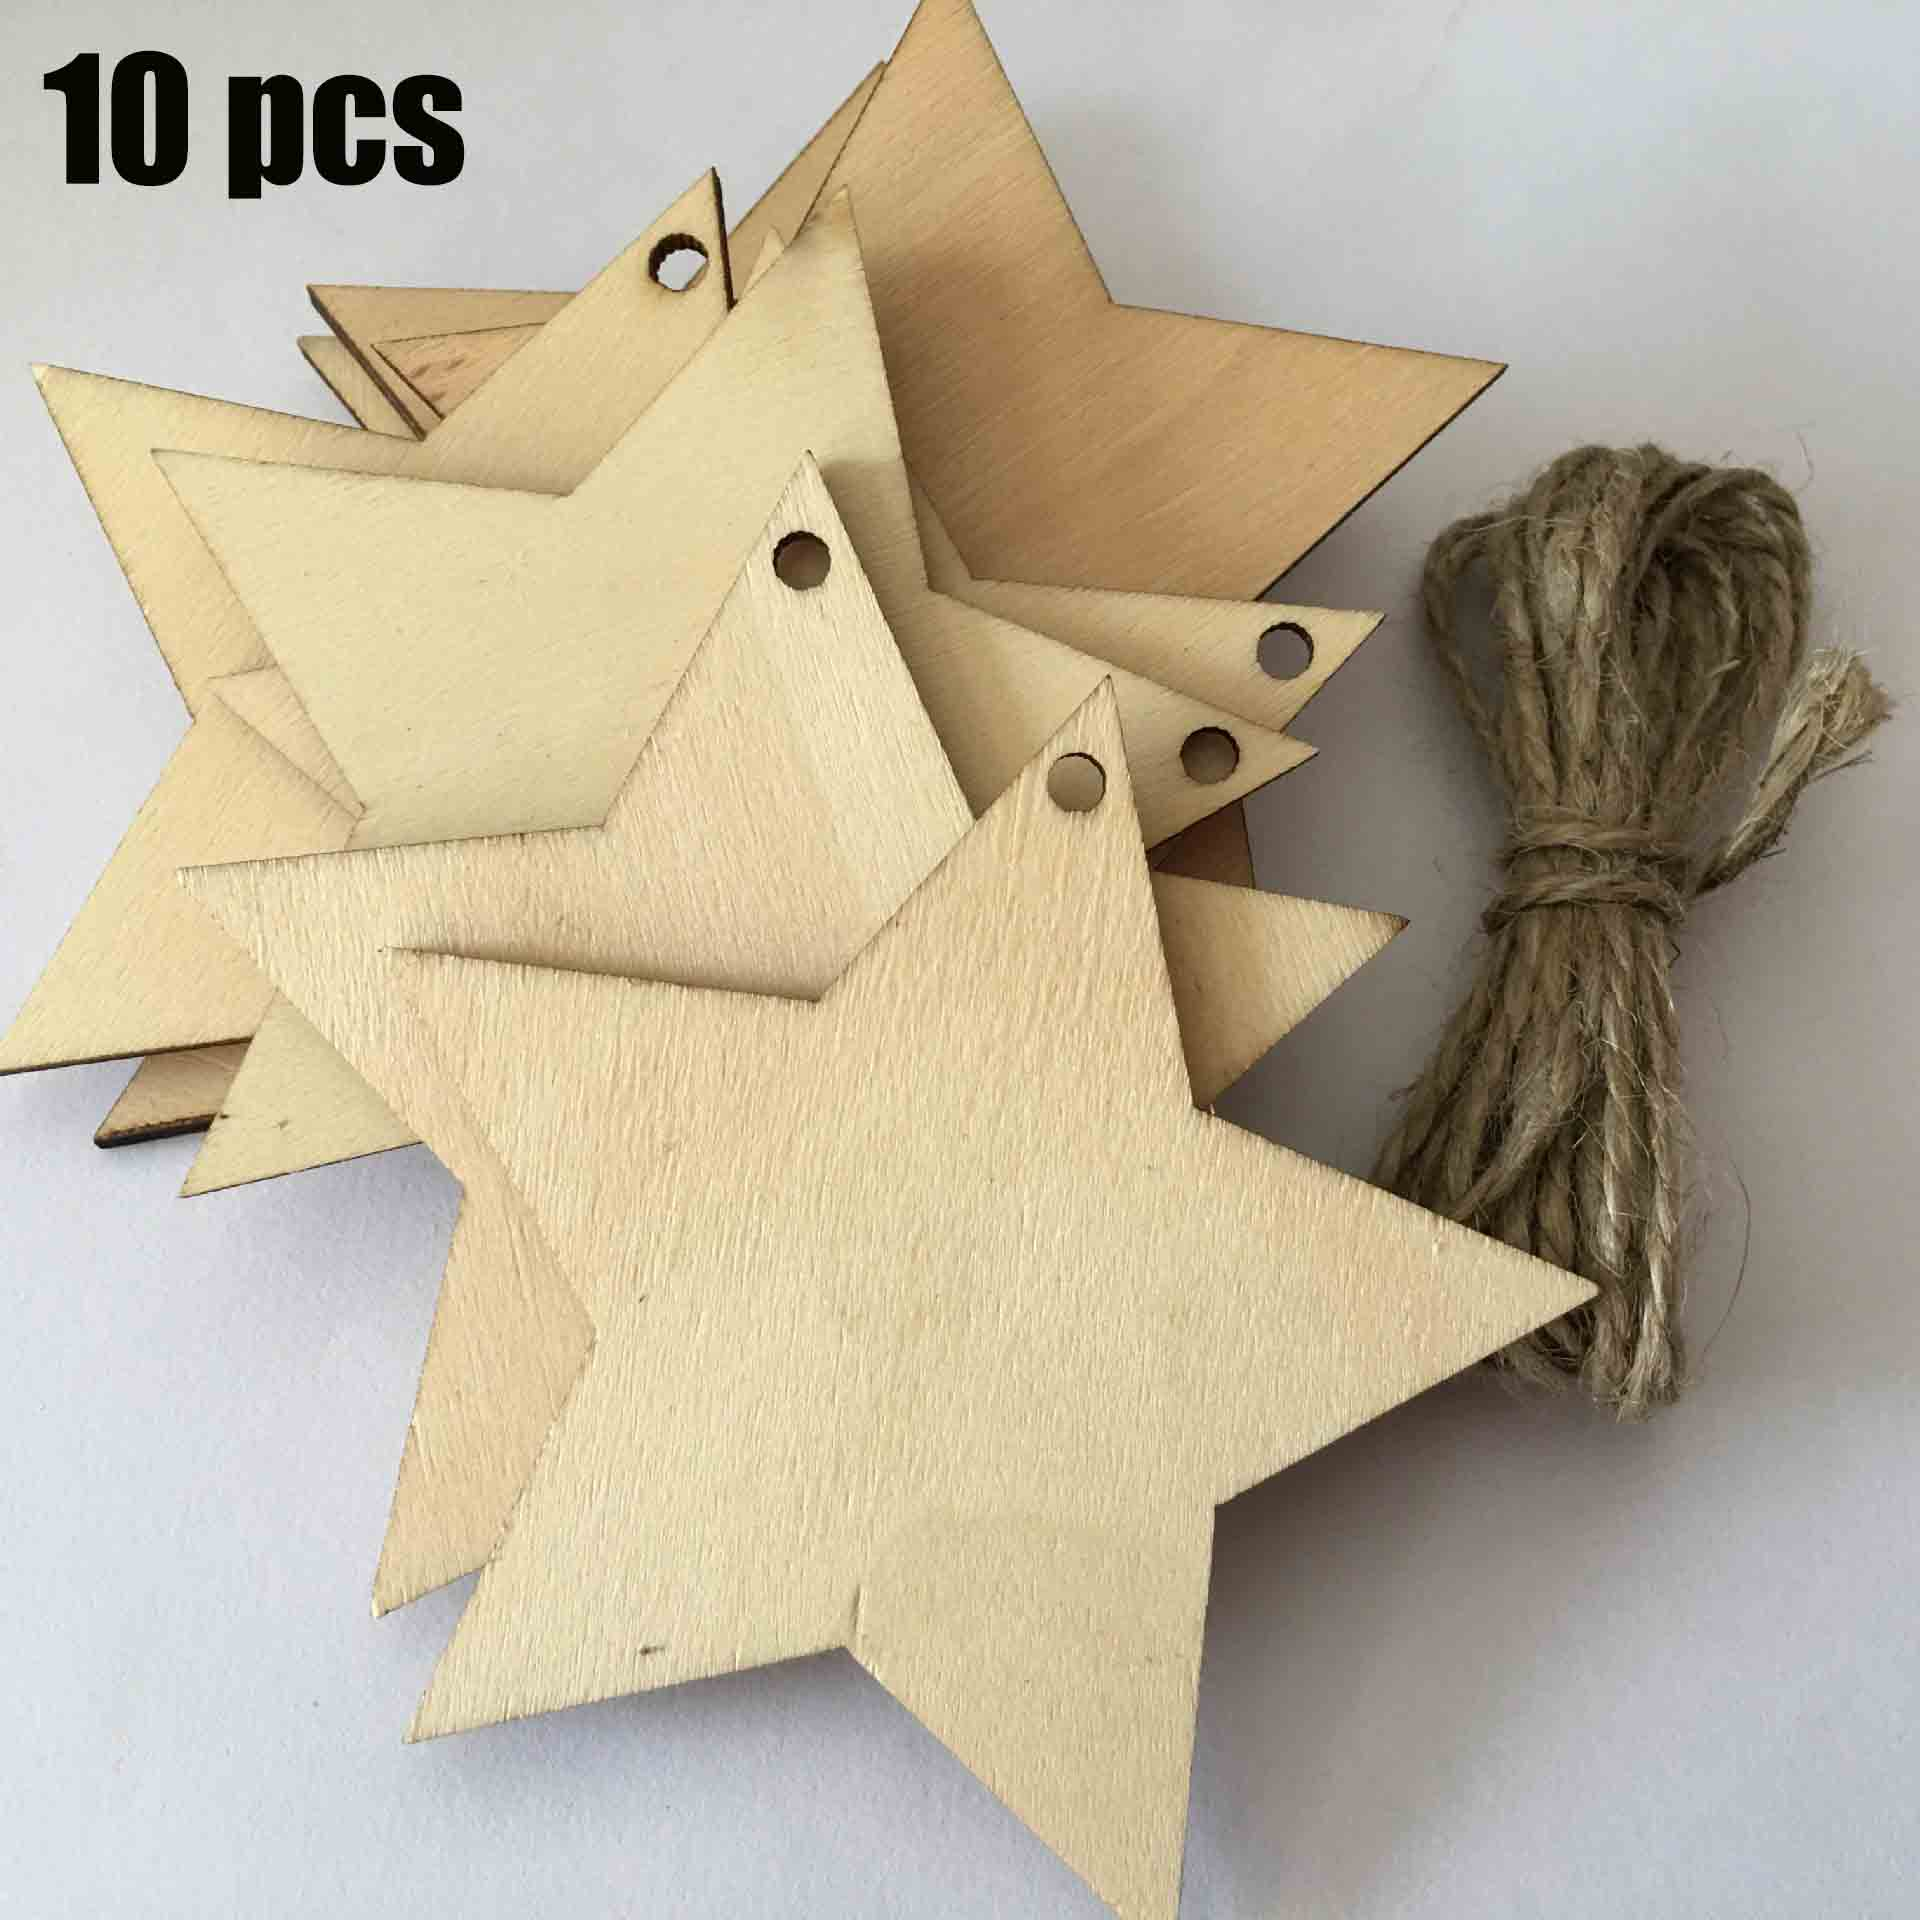 10 Pcs Creative Christmas Star Wooden Pendant Wood Log Slices Discs For DIY Crafts Wedding Centerpieces With 10M Jute Twine